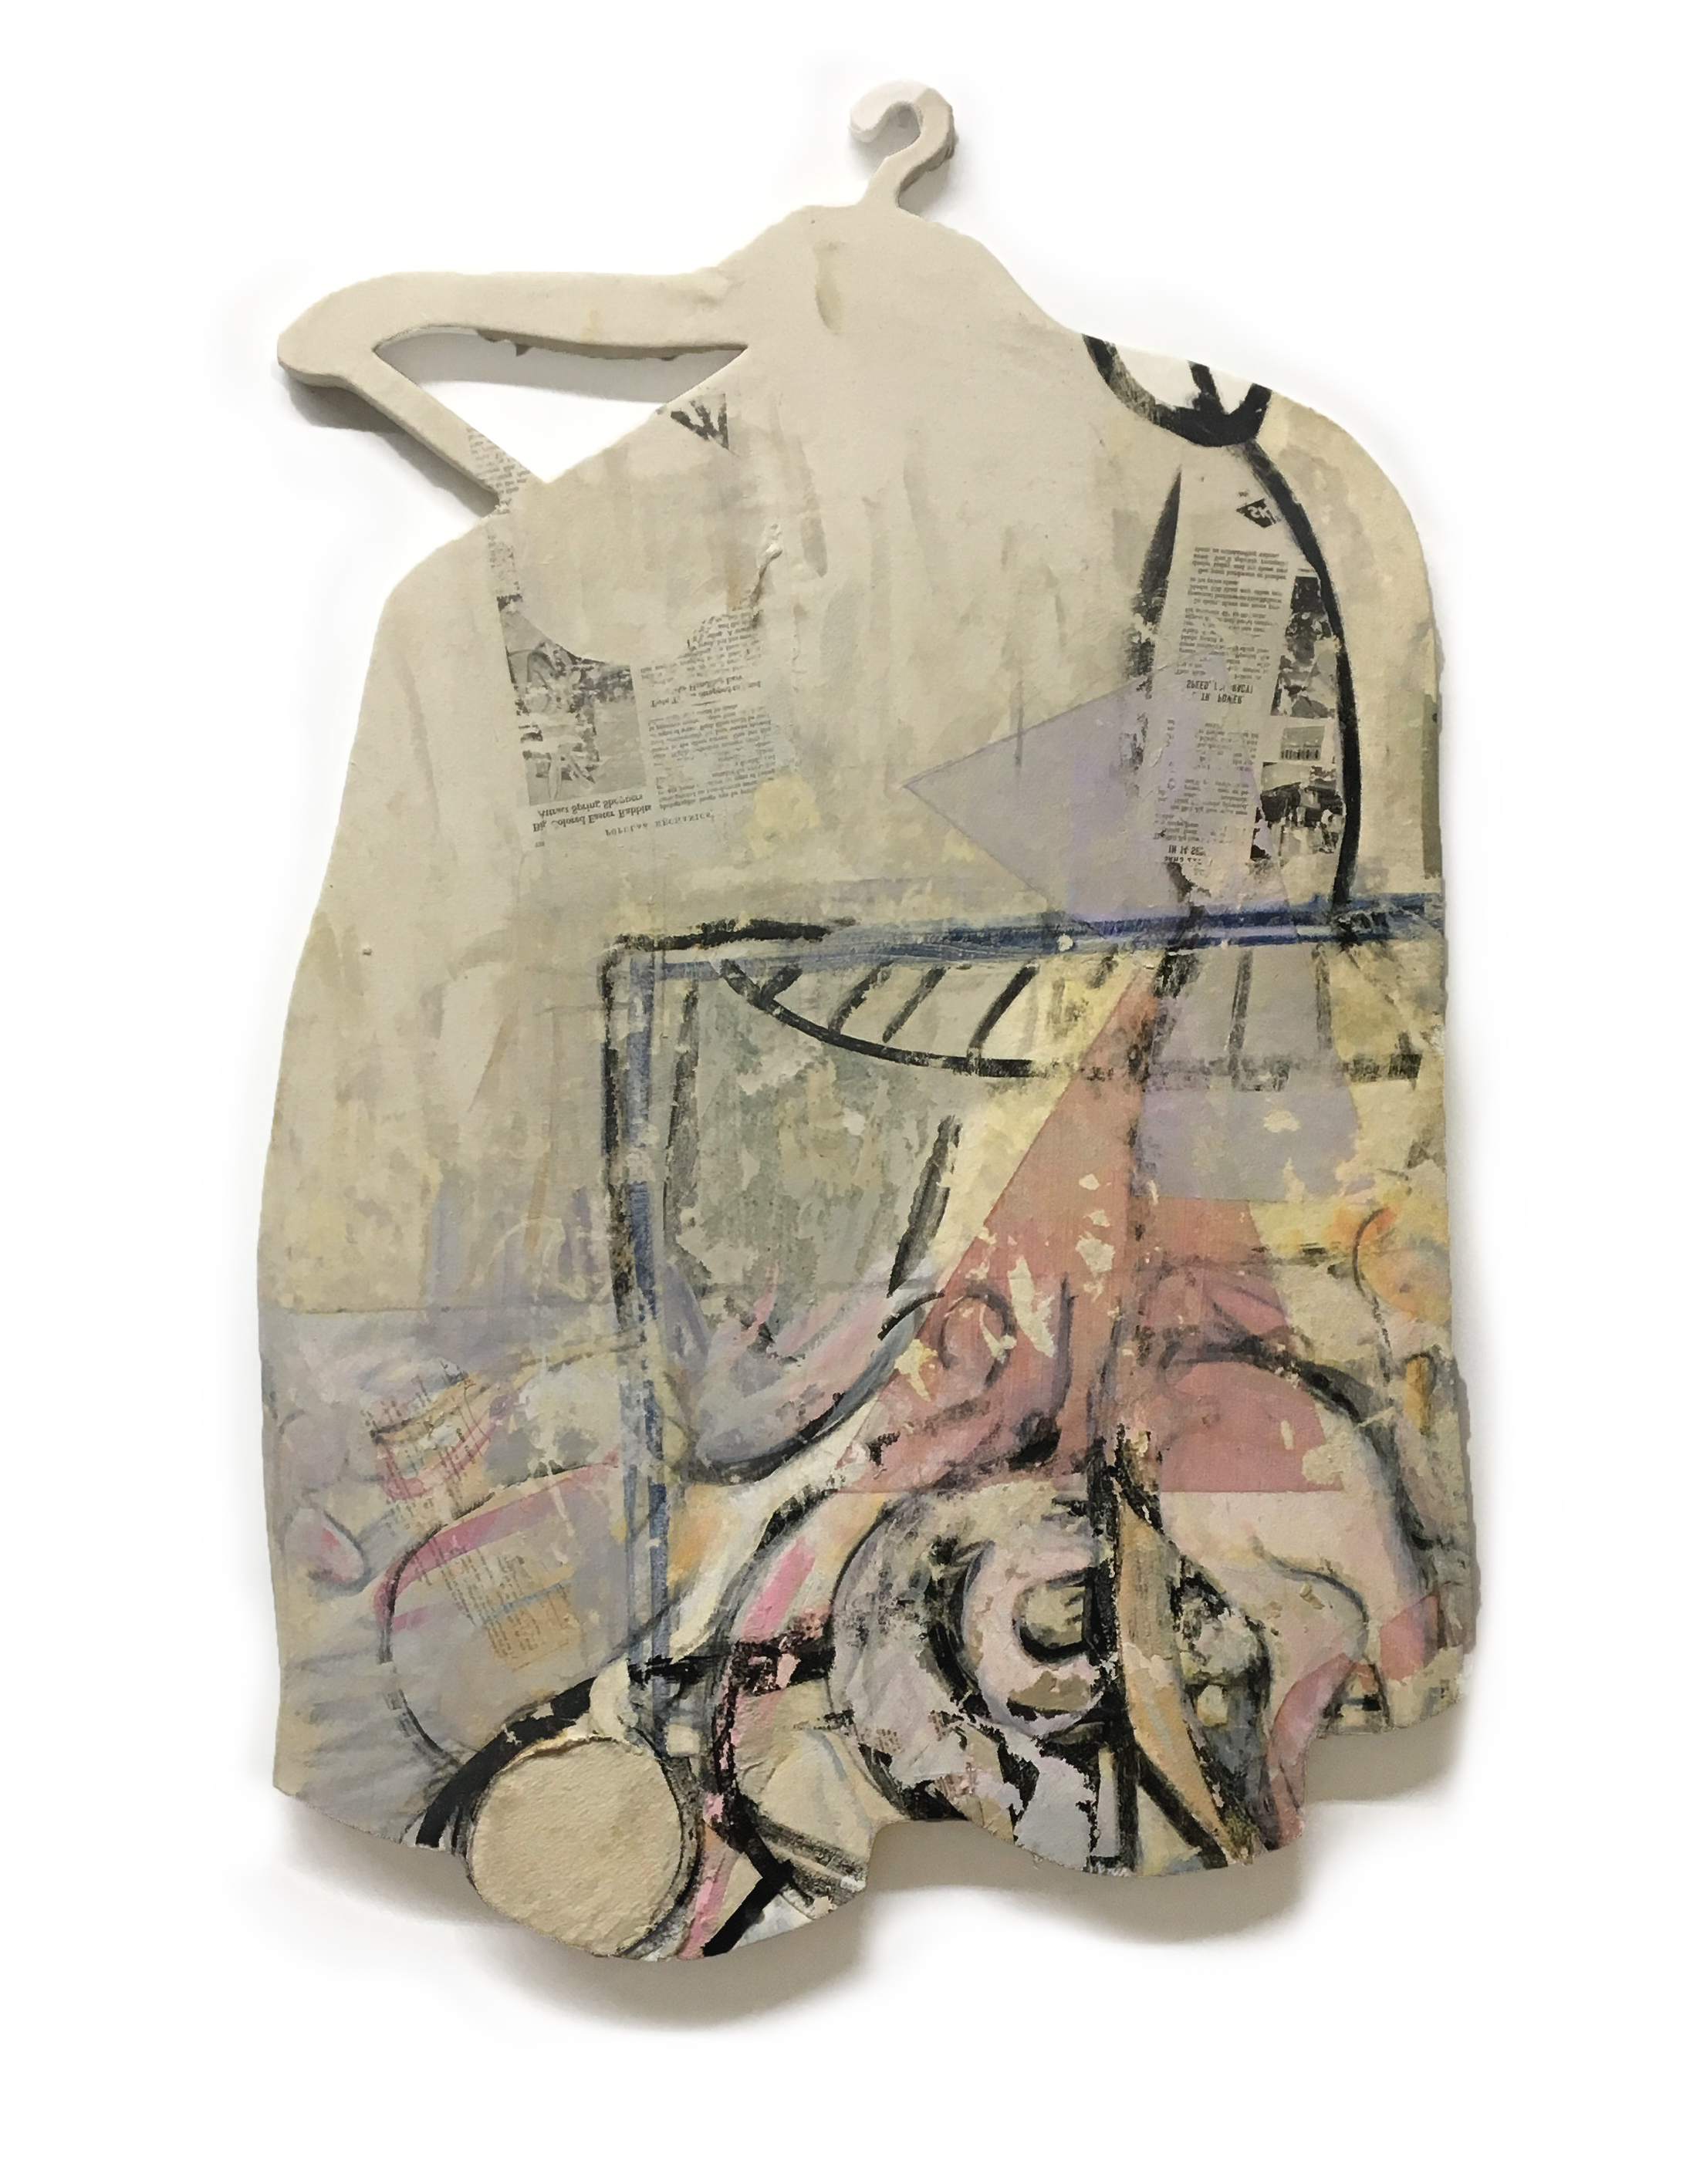 laundered_painting_(36x25)_iv-gallery.jpg